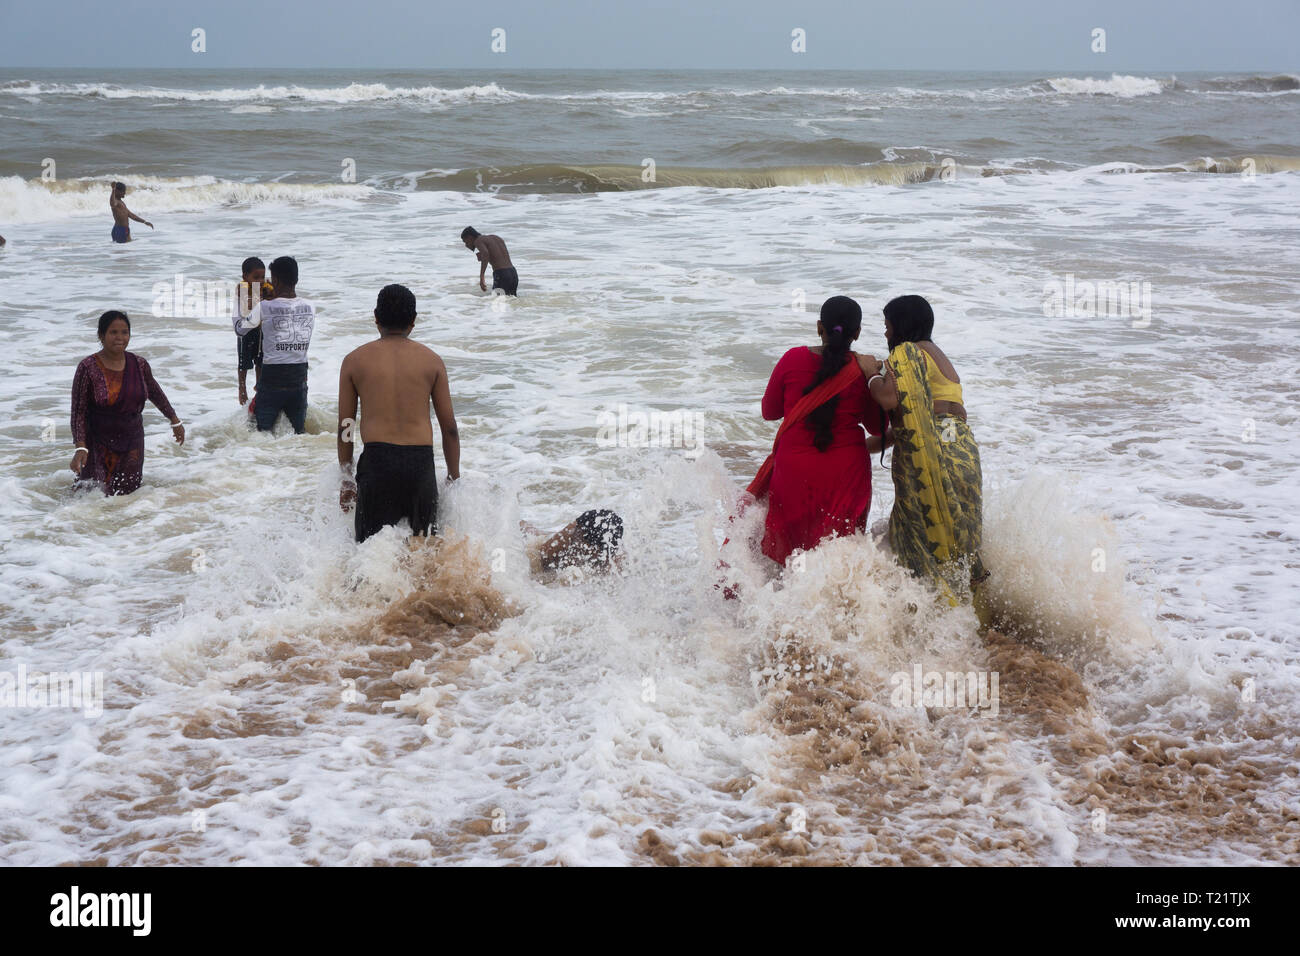 women with Sarees bathing in the sea - Stock Image